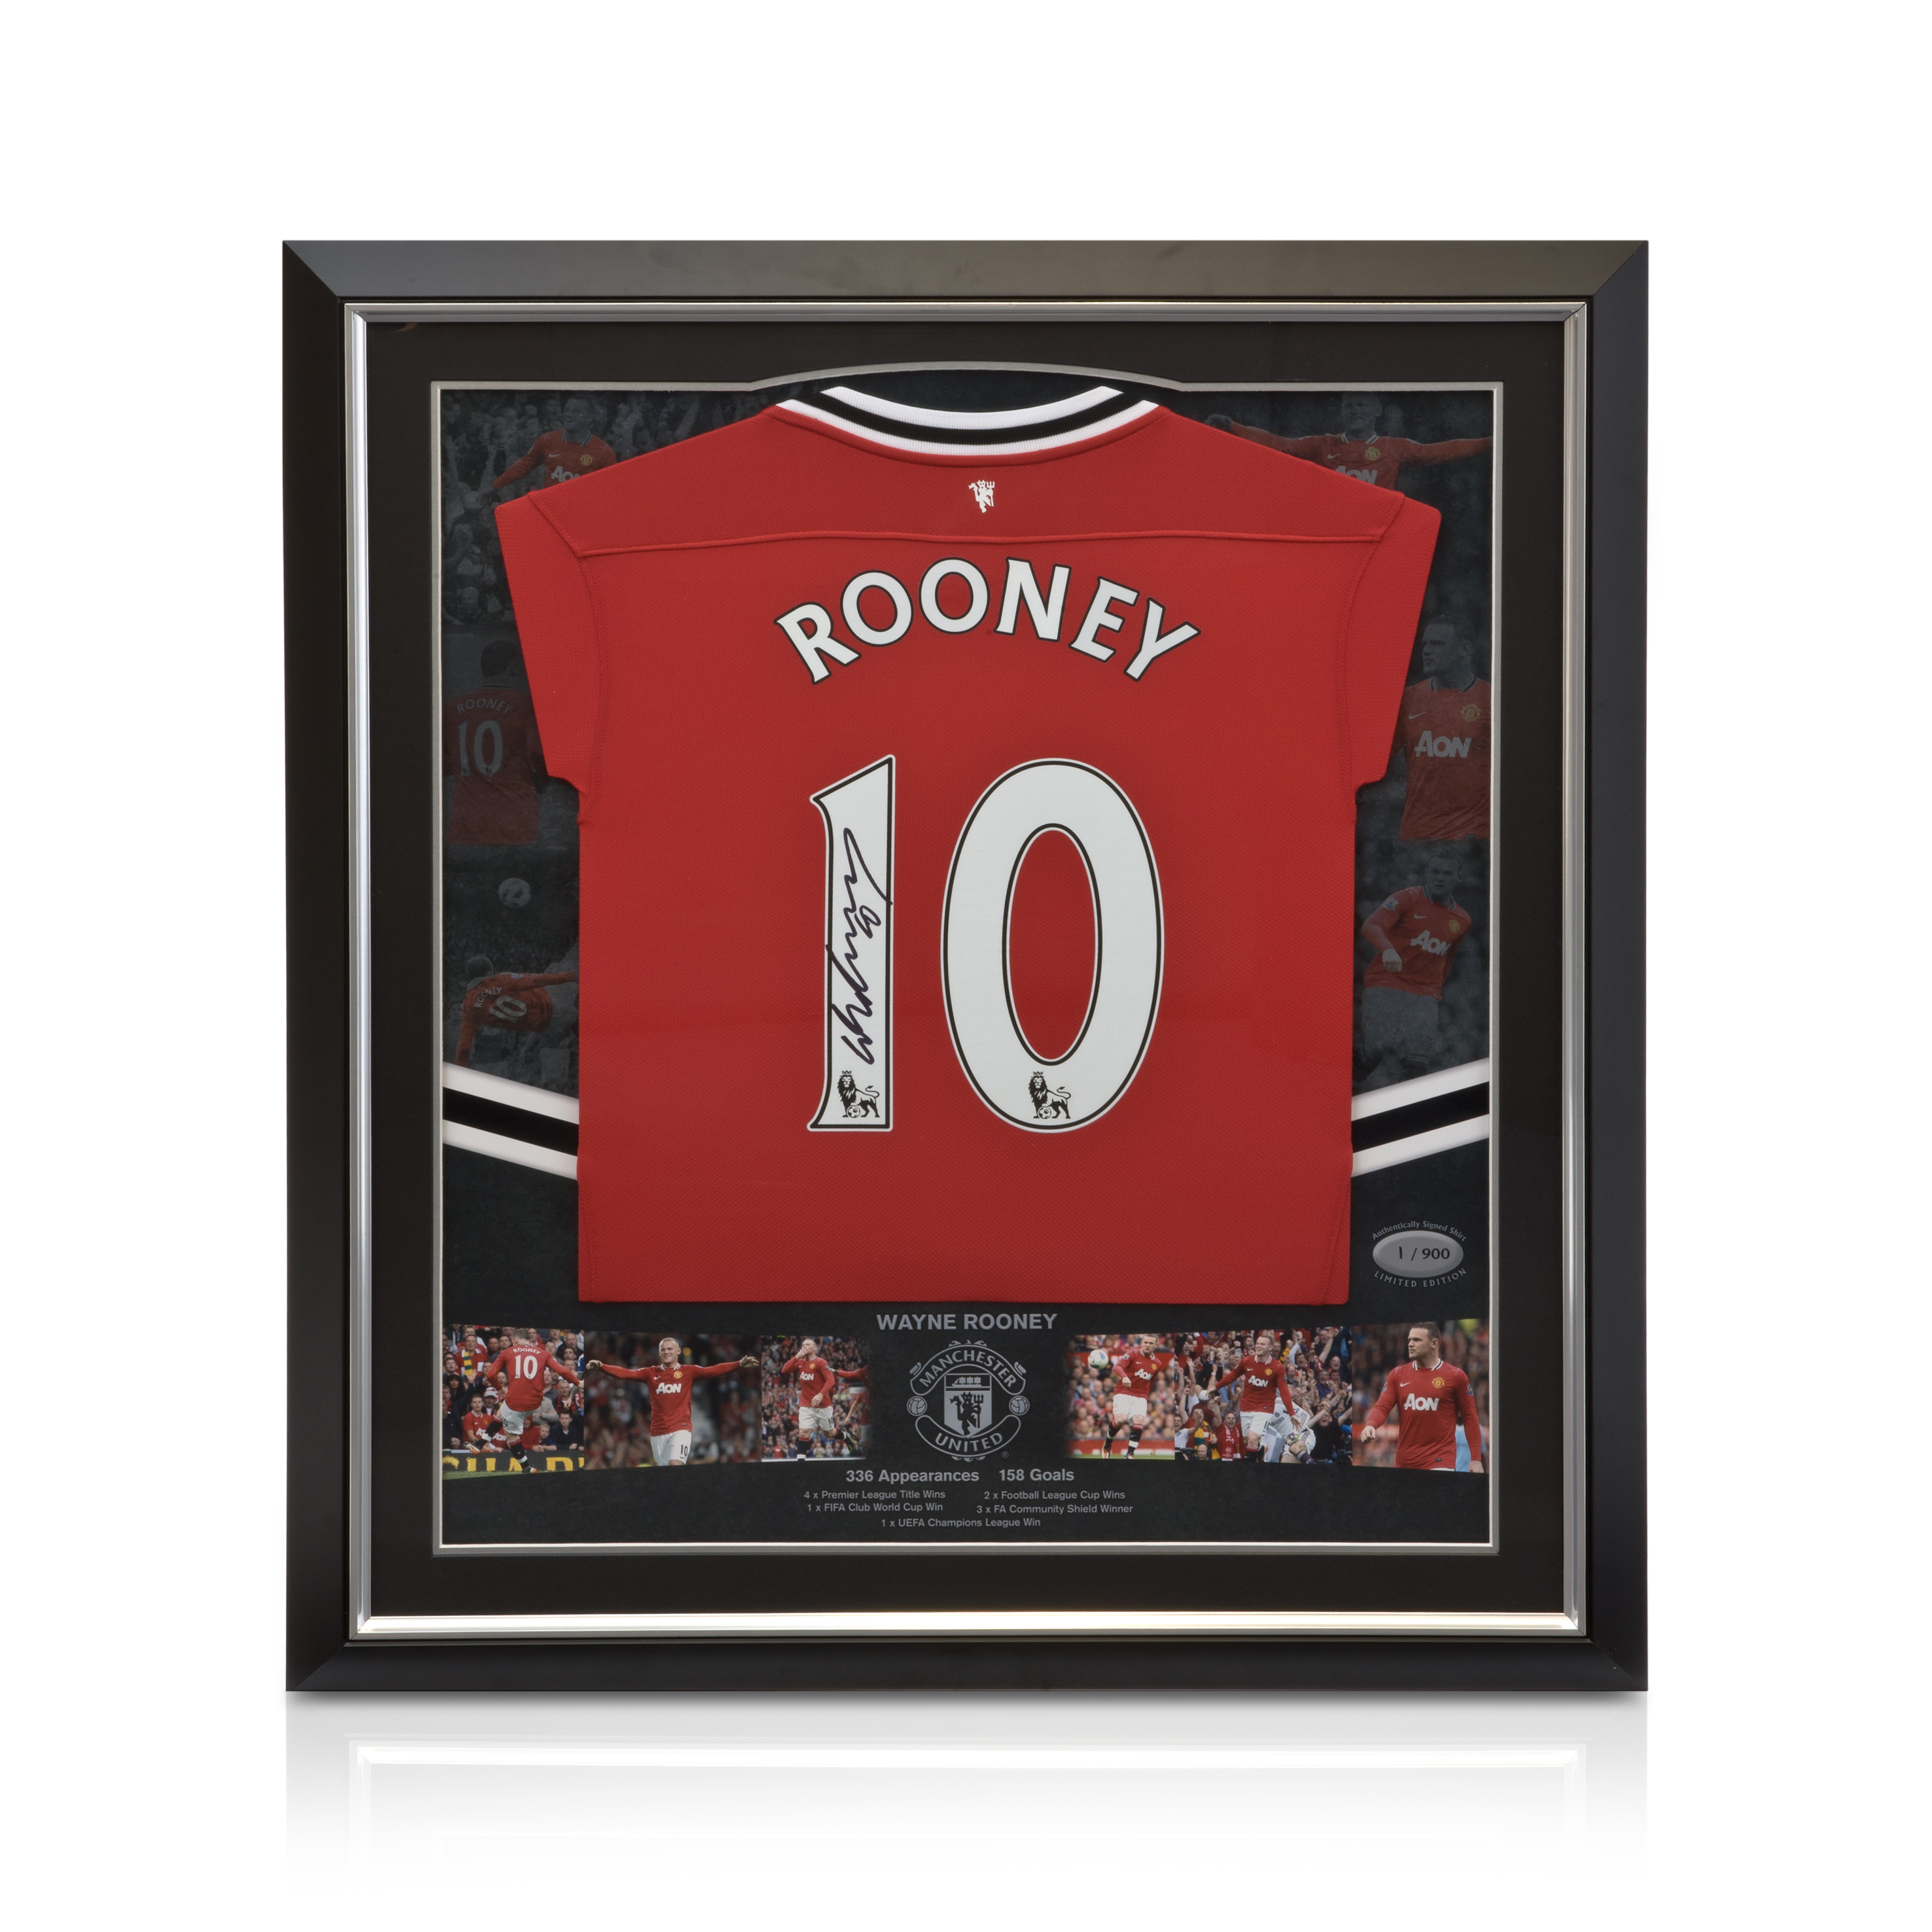 Manchester United Limited Edition Hand Signed Wayne Rooney Shirt - Framed